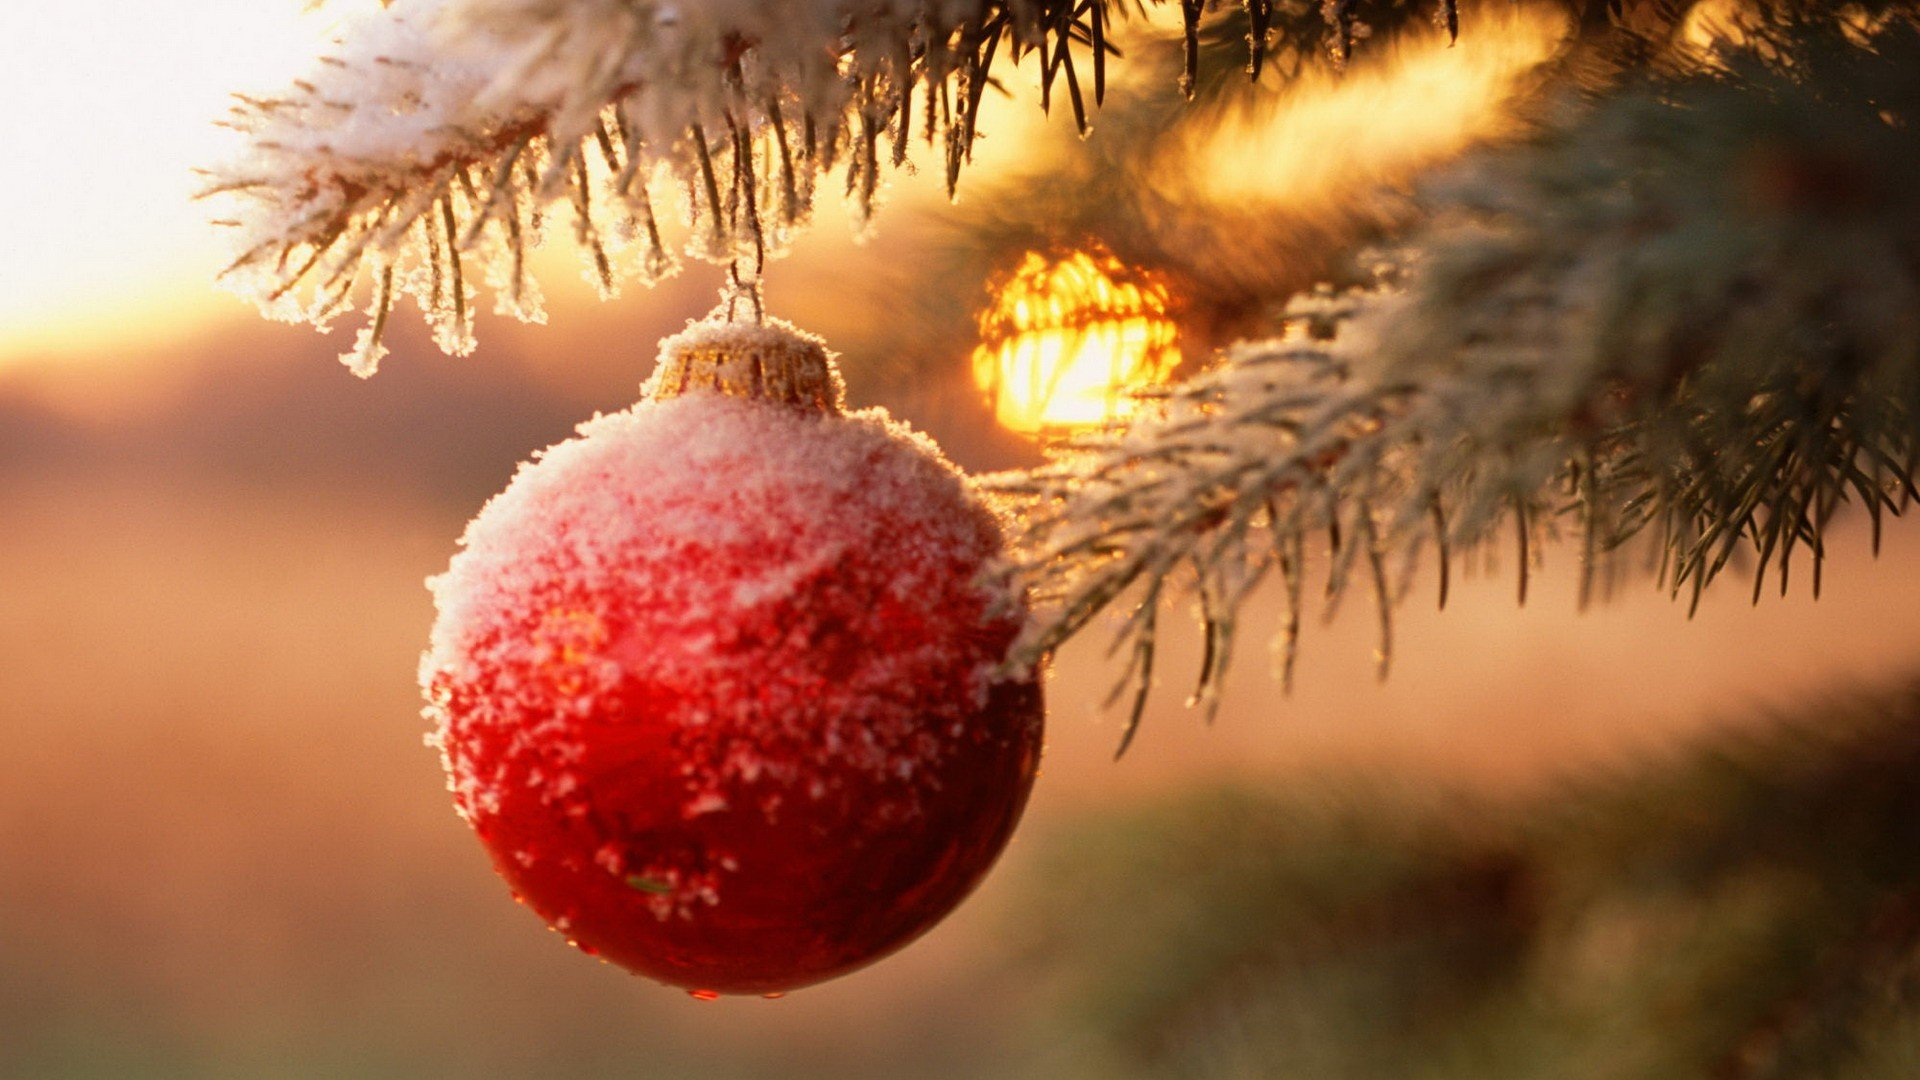 Free Christmas Ornaments Decorations High Quality Wallpaper Id435035 For Full Hd 1920x1080 Pc